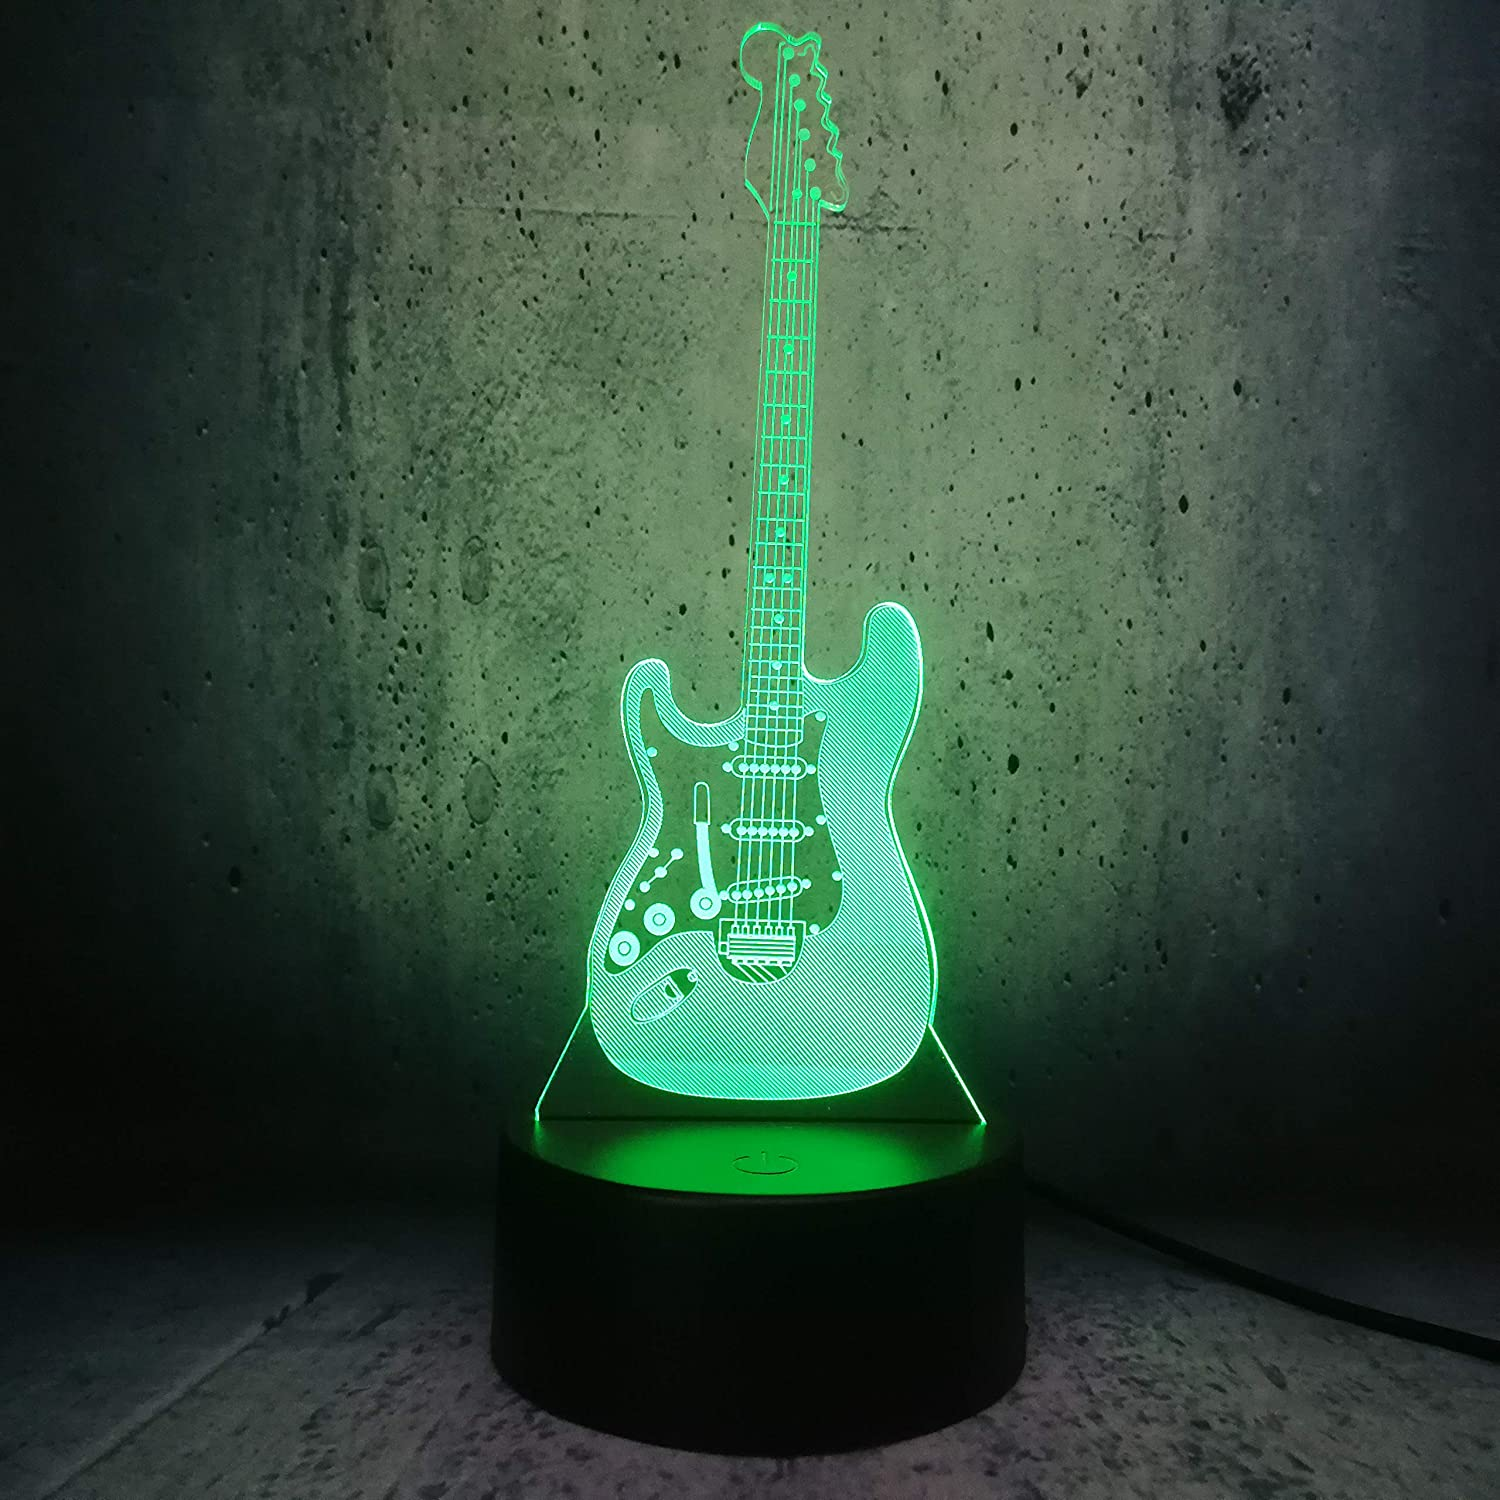 Bass Guitar Bedside Lamp 3D LED Night Light Illusion Stringed Instrument 7 Colors Change Remote Control Teens Room Decor Desk Lighting Children Friends Xmas Gifts